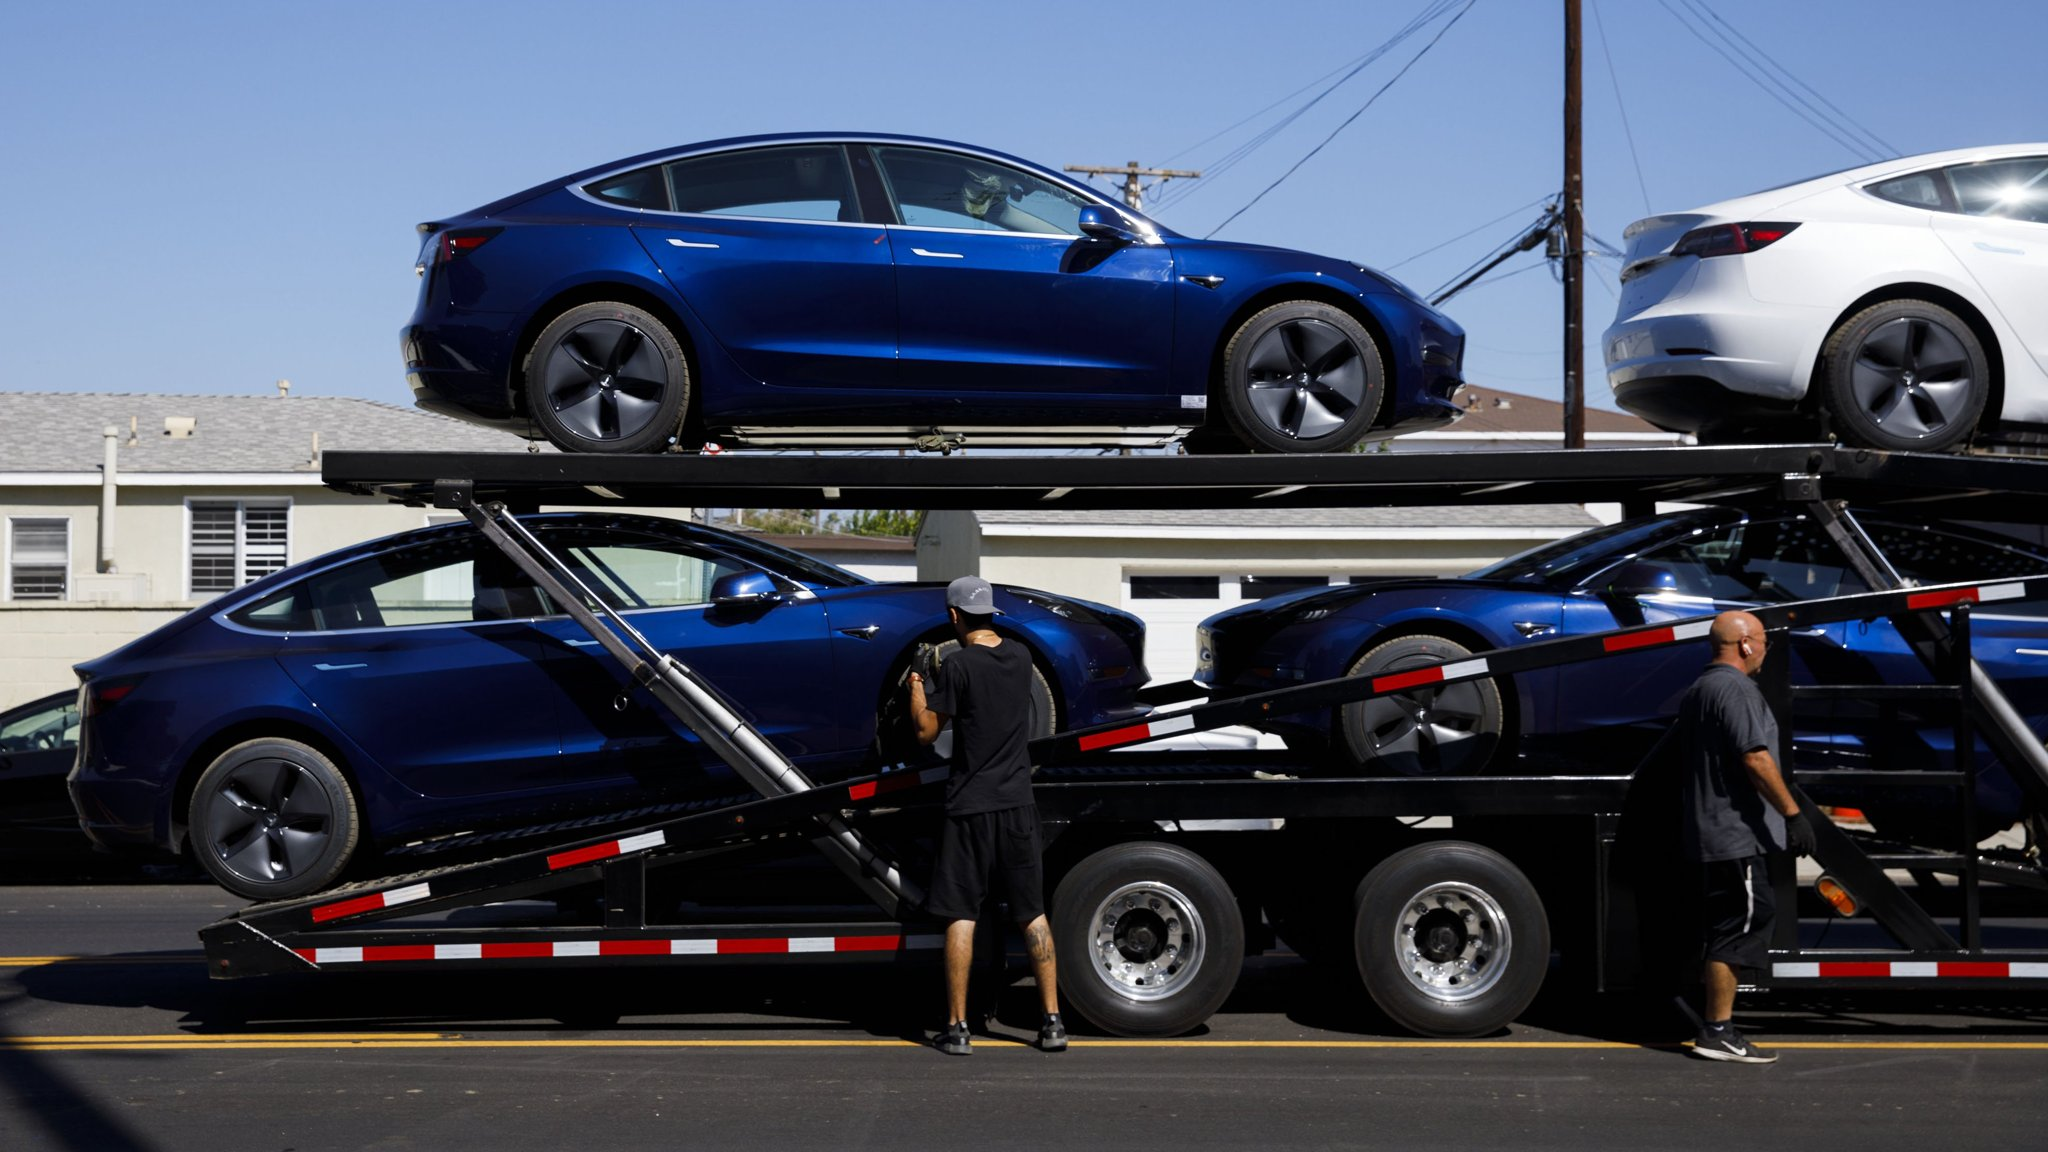 Tesla analyst cuts Model 3 forecast amid demand worries